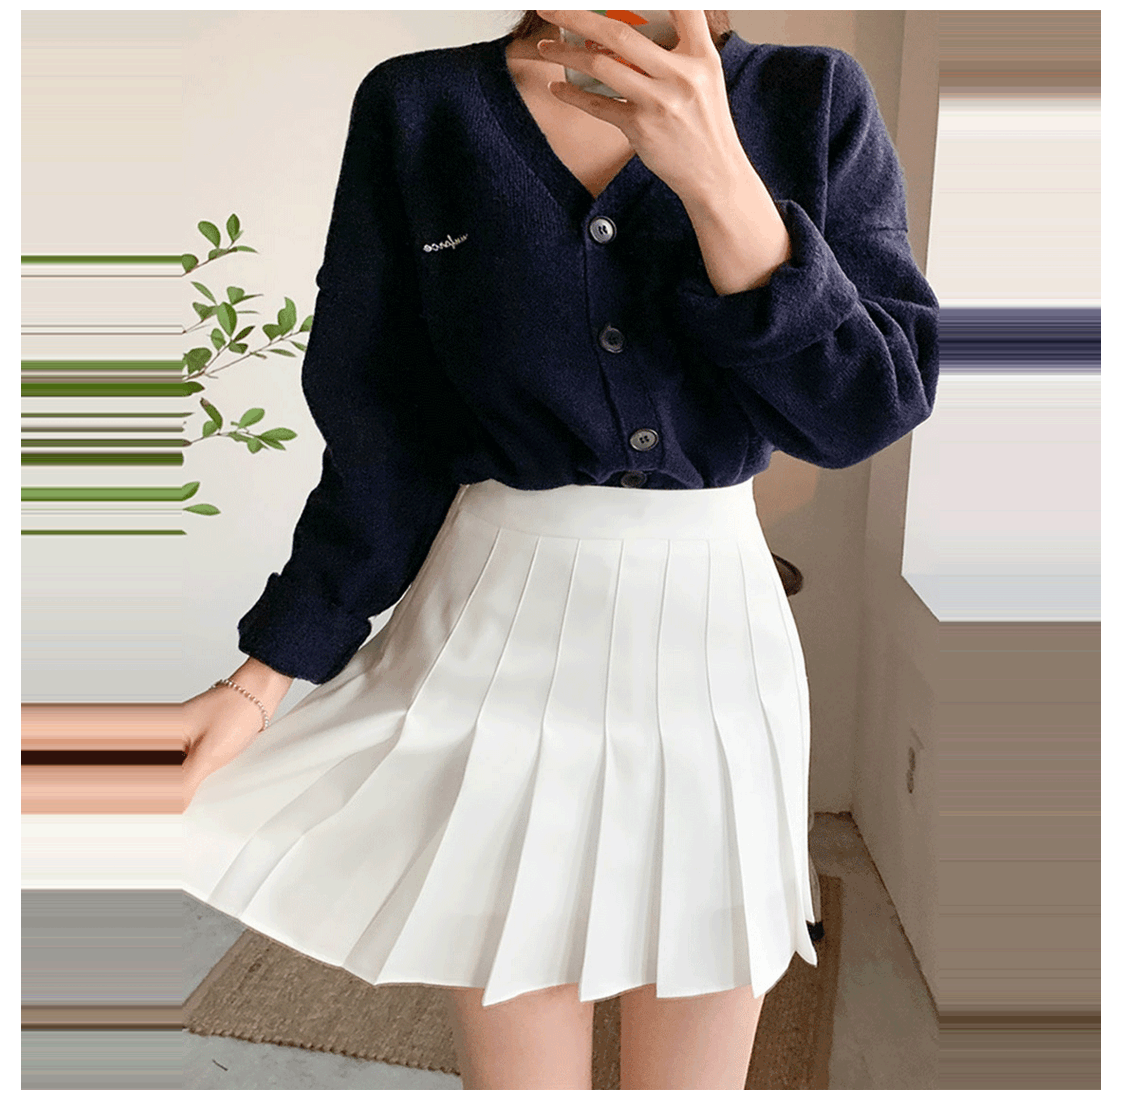 Lovely Tennis Culottes Pants #white #pleated #skirt #outfit